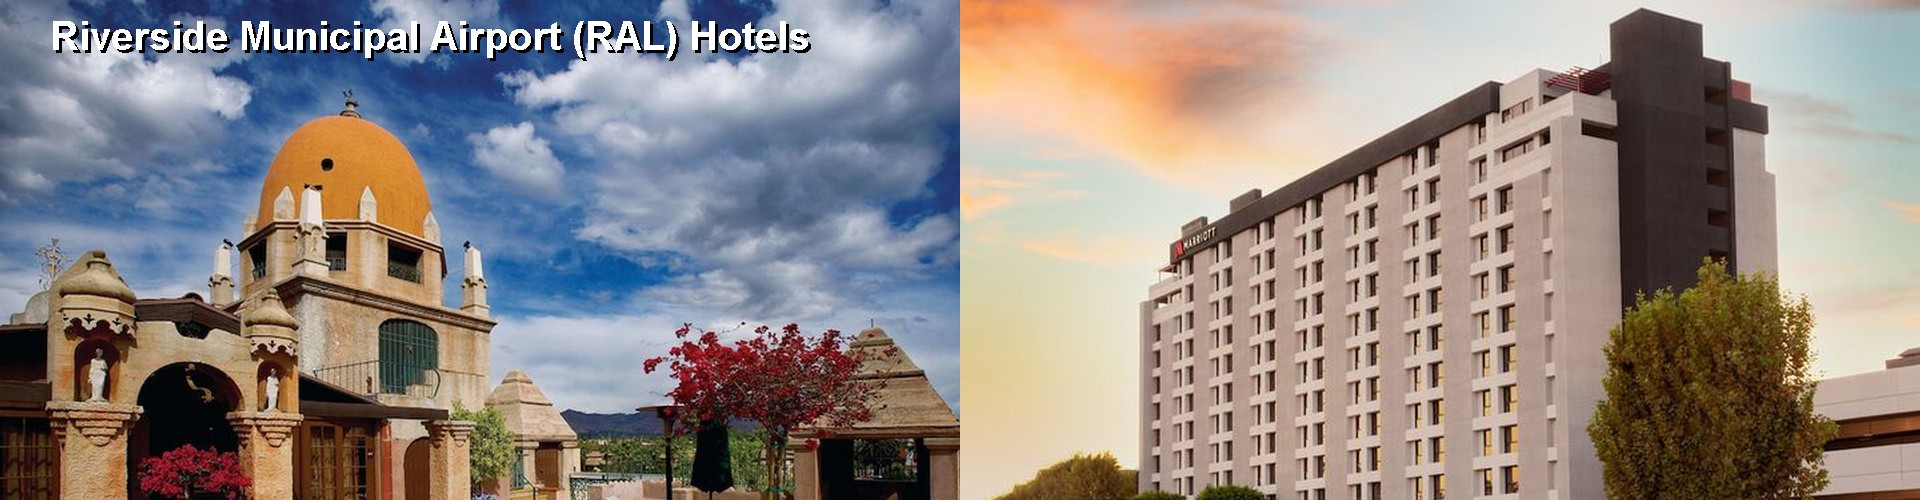 5 Best Hotels near Riverside Municipal Airport (RAL)